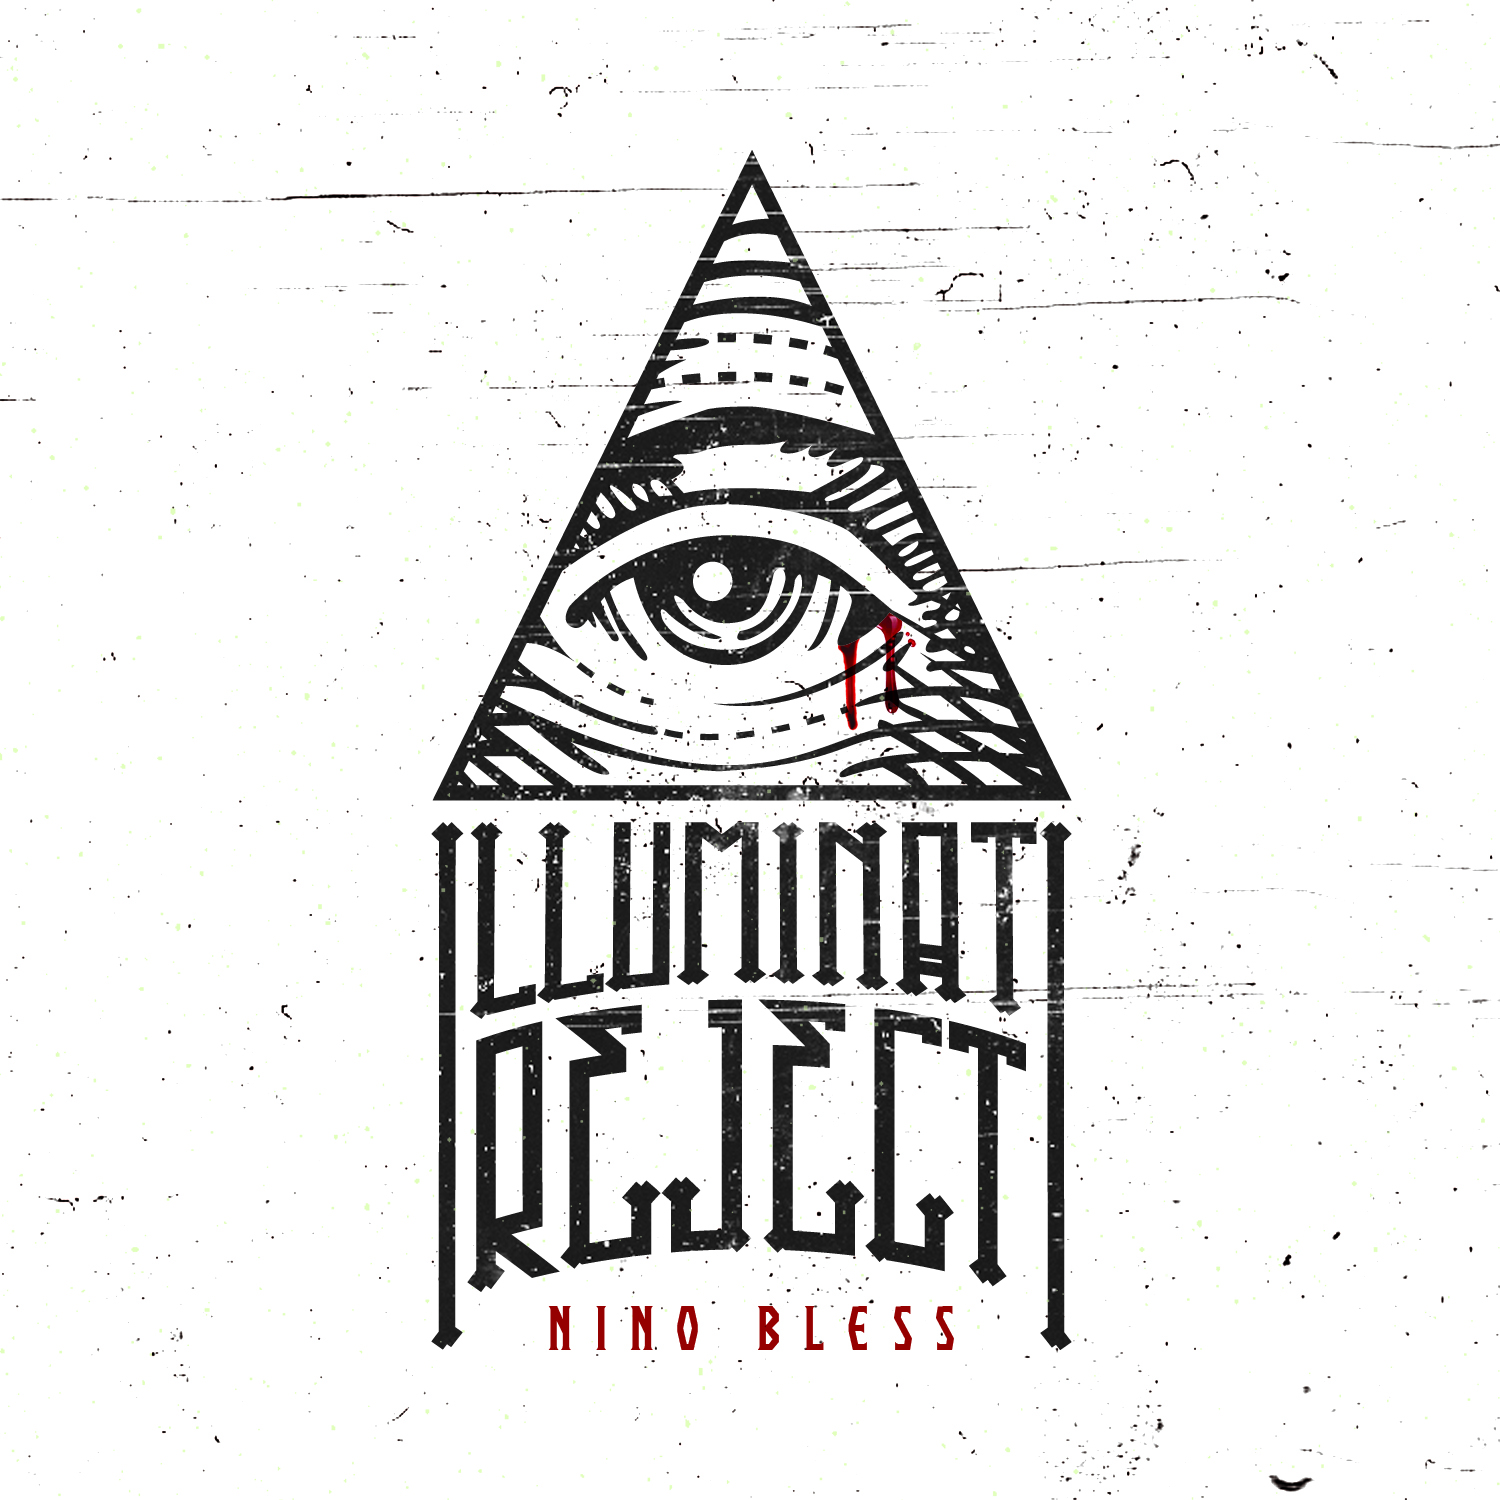 Illuminati Reject by Nino Bless | Take The AudioTrip